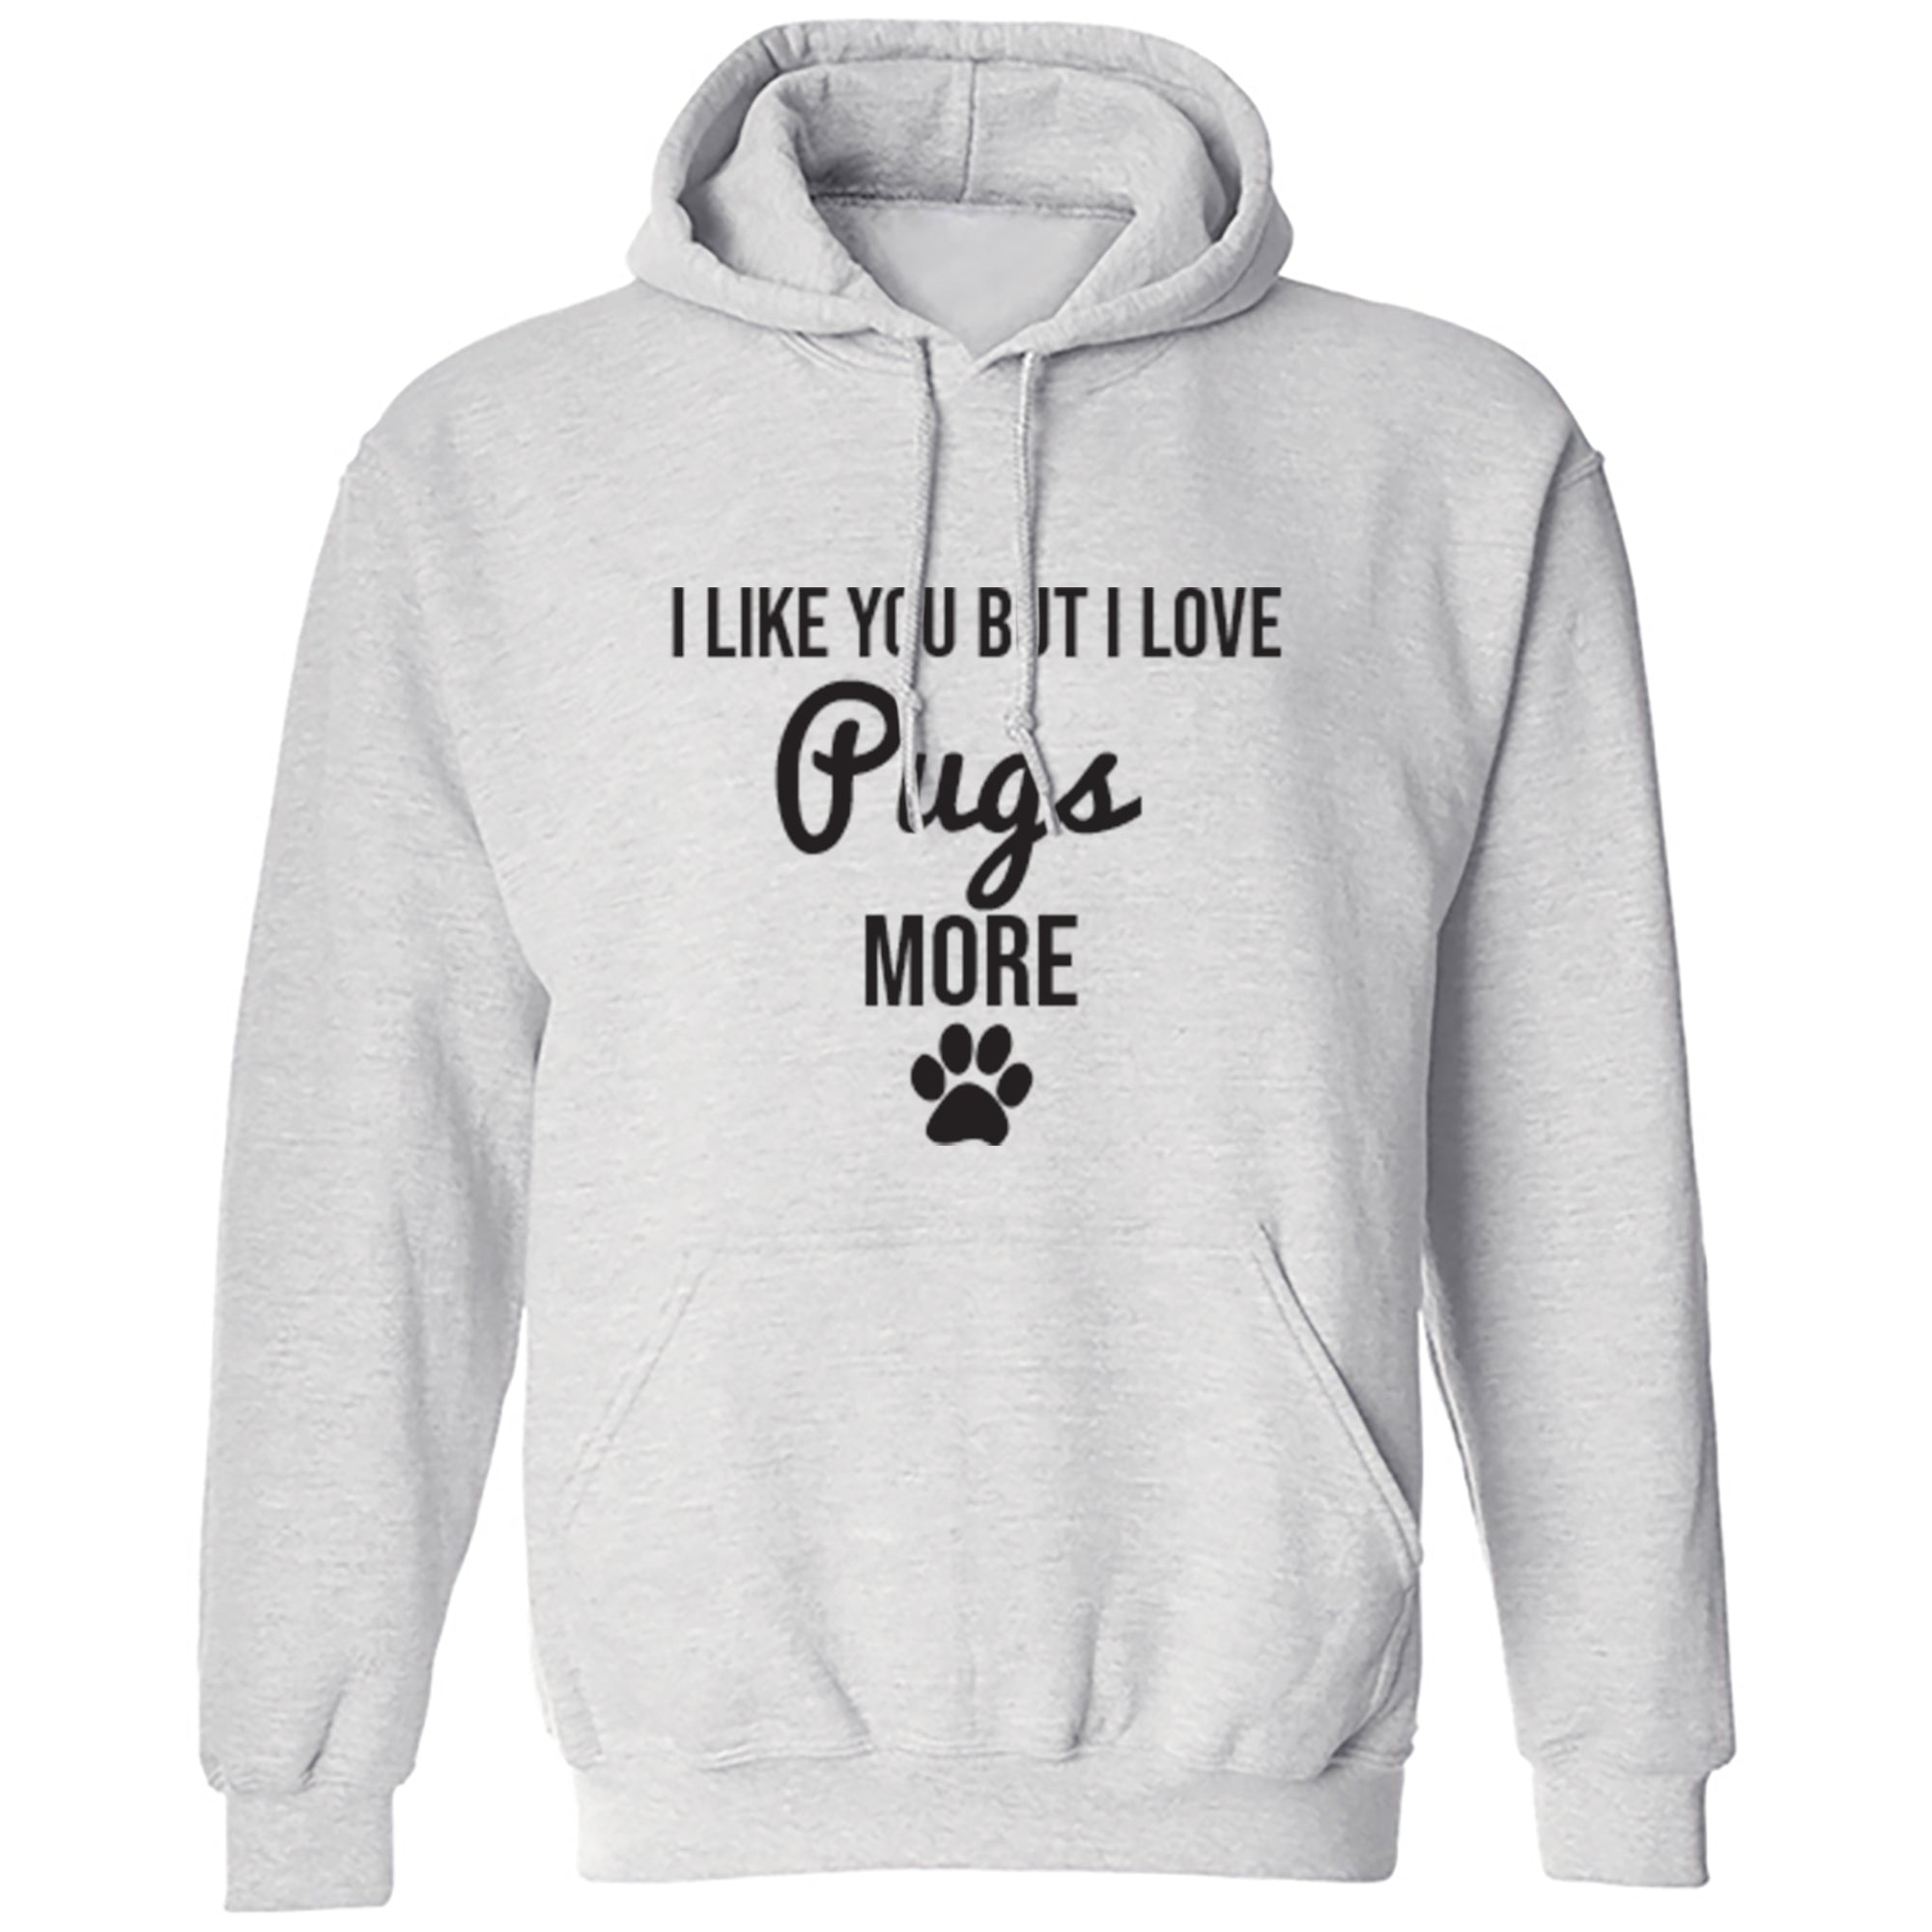 I Like You But I Love Pugs More Unisex Hoodie S0089 - Illustrated Identity Ltd.